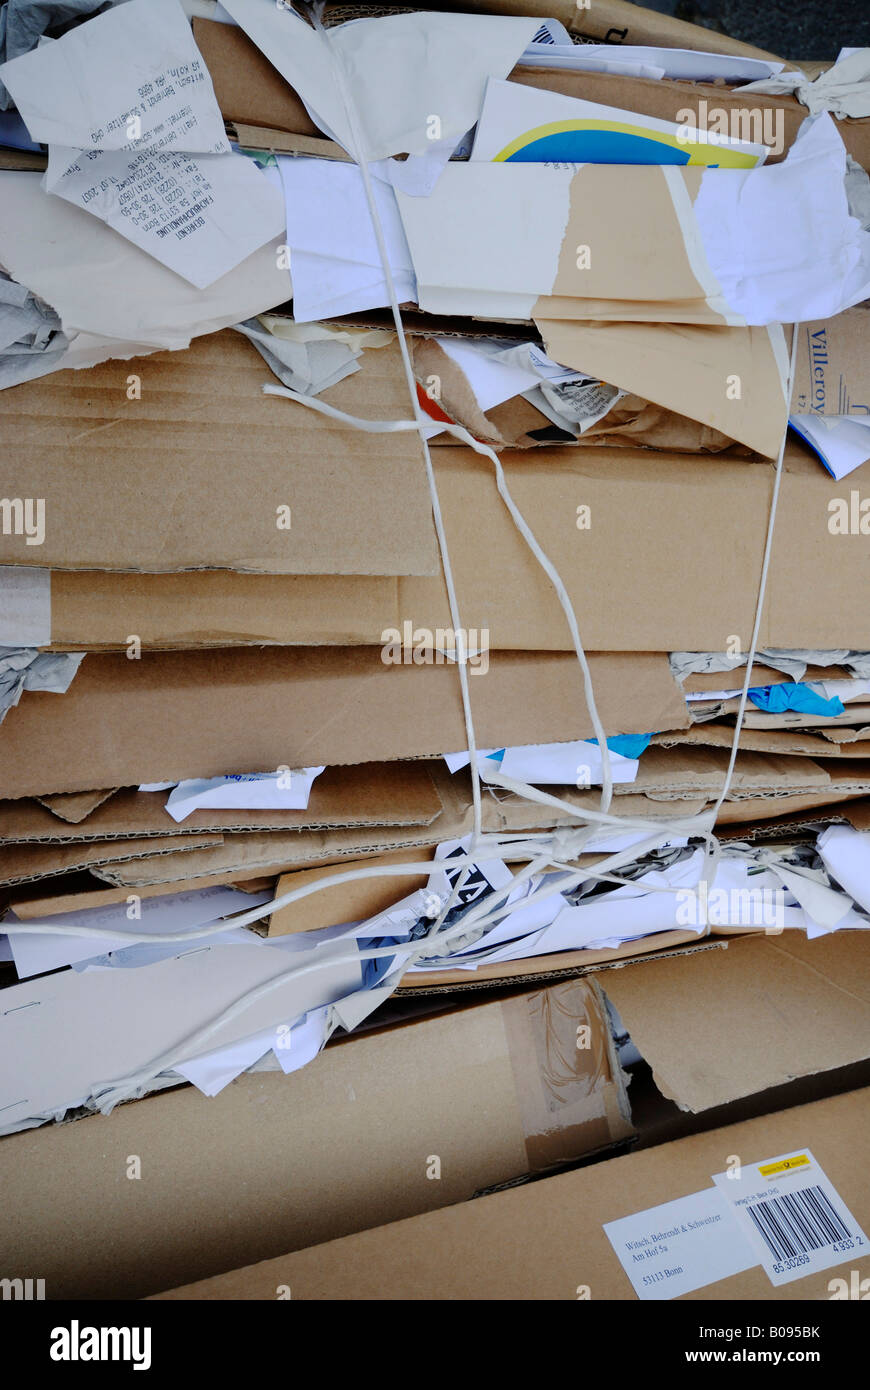 Paper tied up for recycling - Stock Image